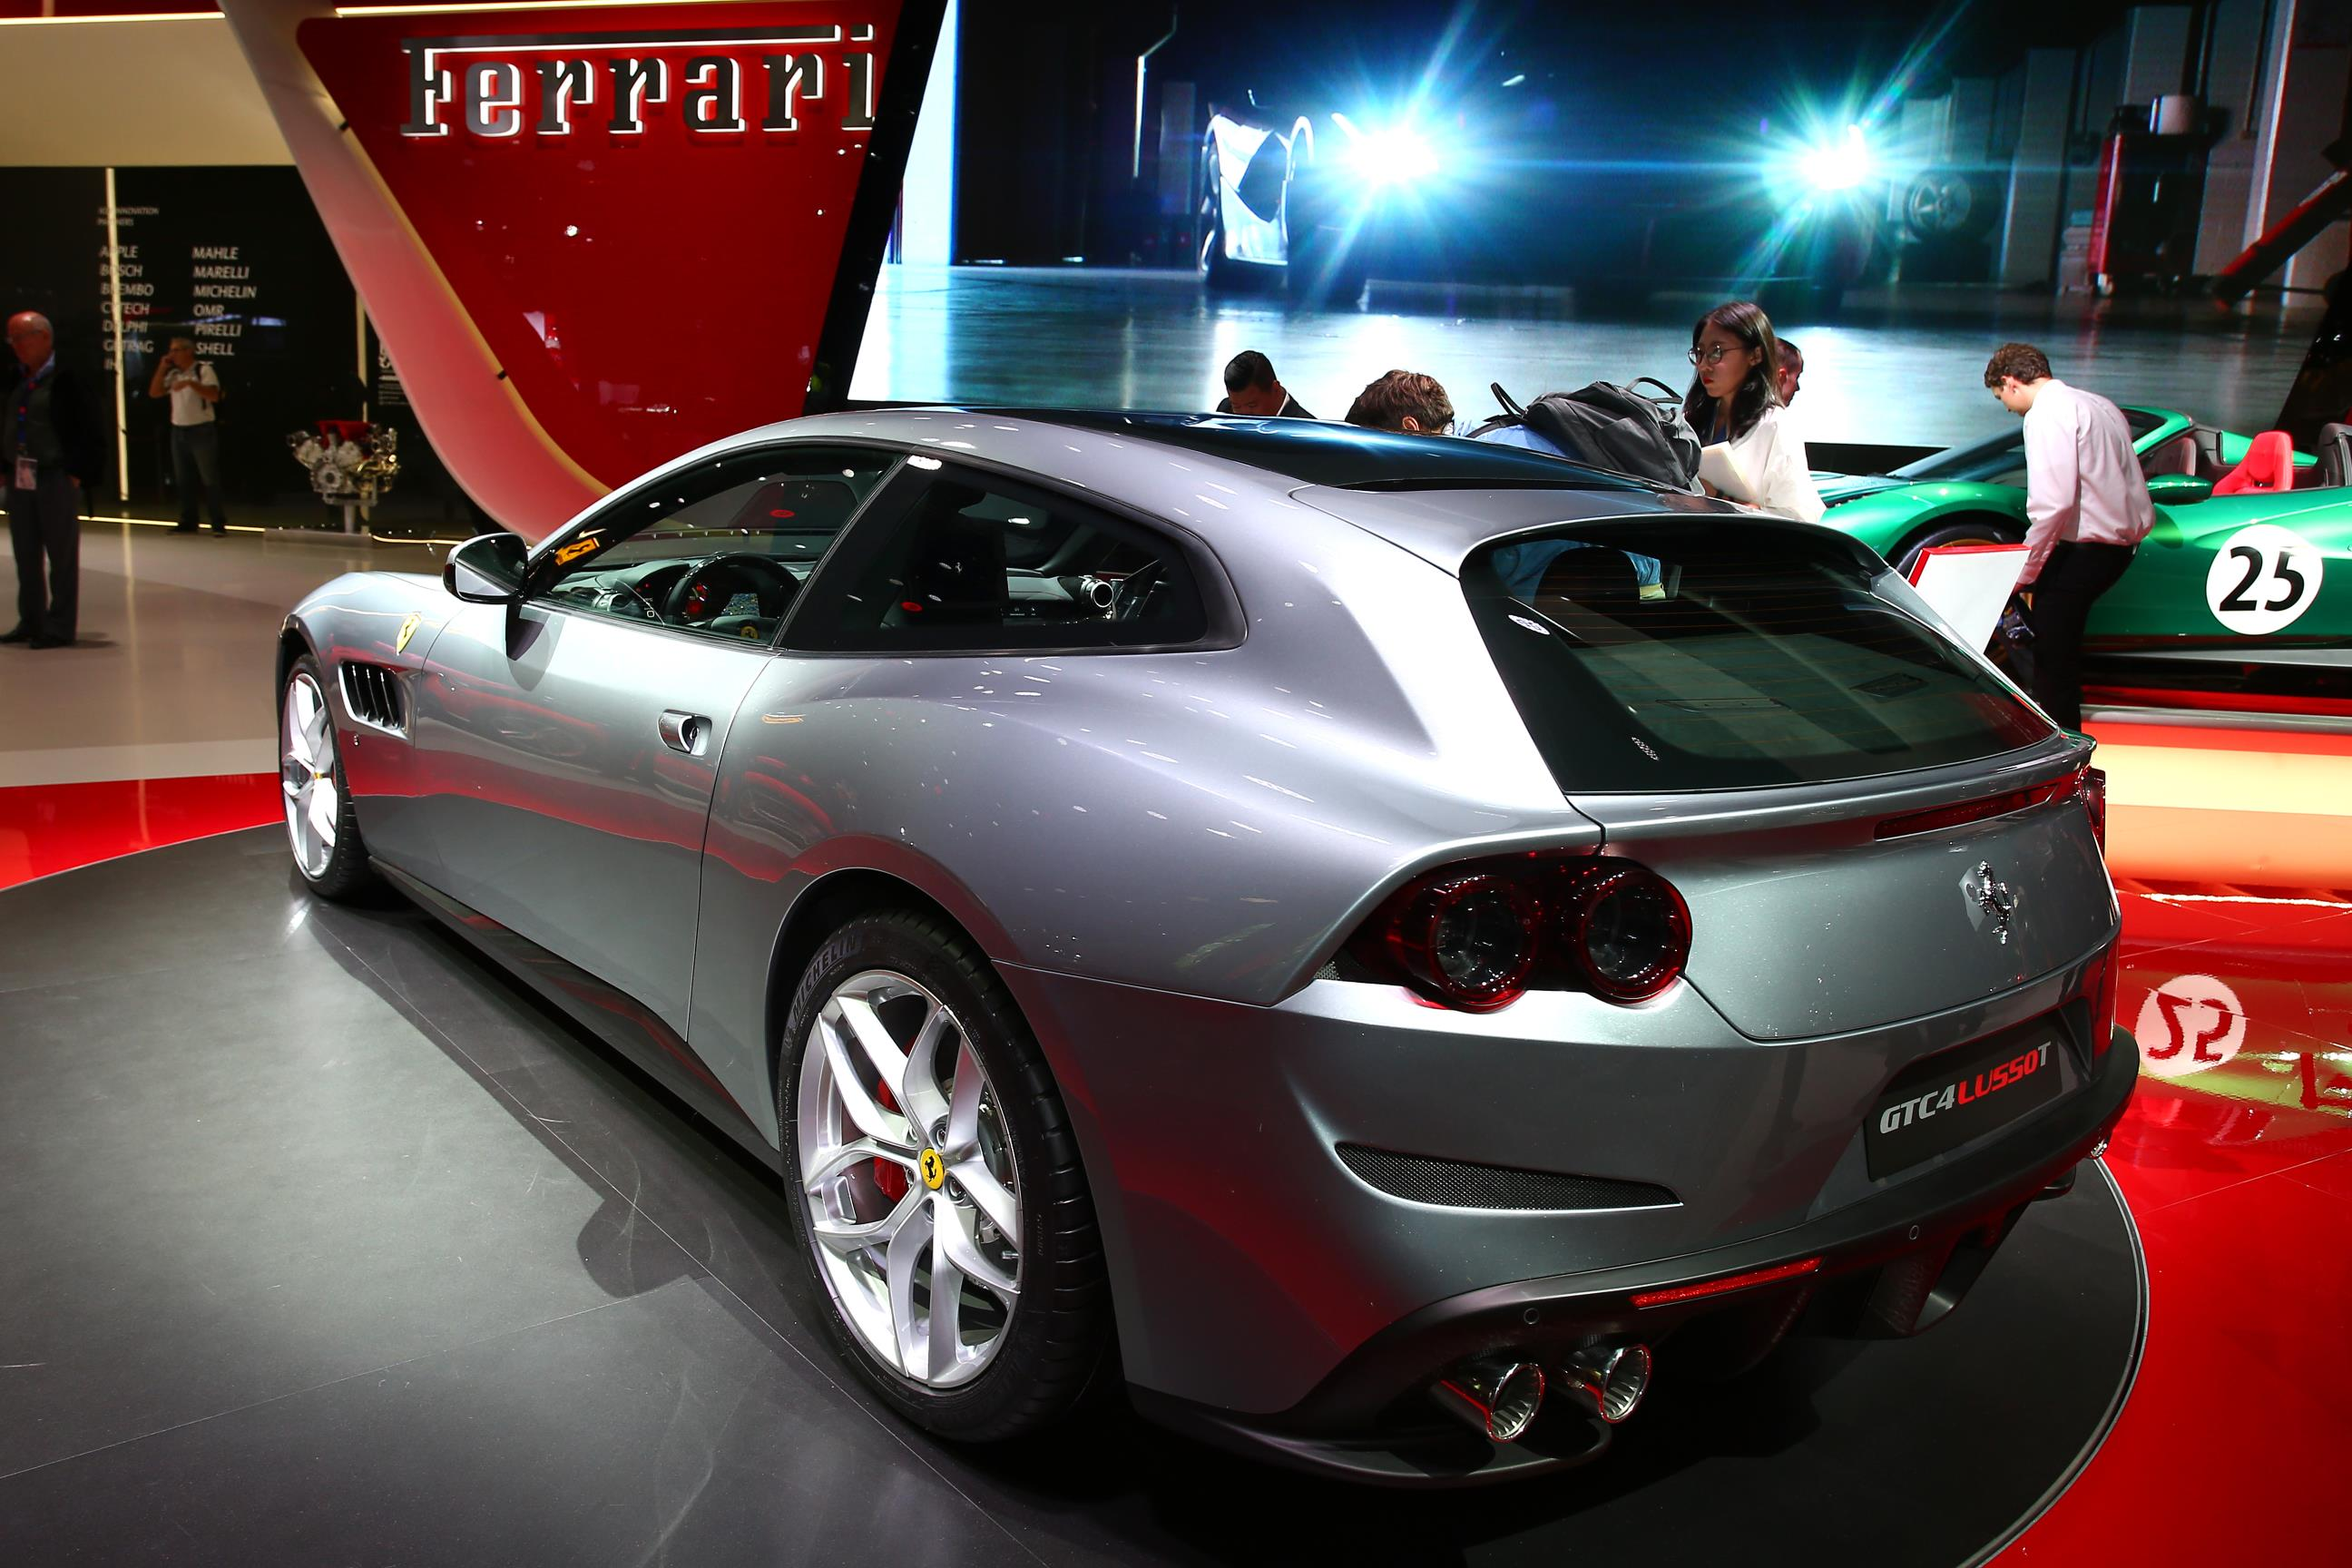 2017 Ferrari 488 Spider >> 2017 Ferrari GTC4Lusso T Adds Torque and Loses AWD in ...